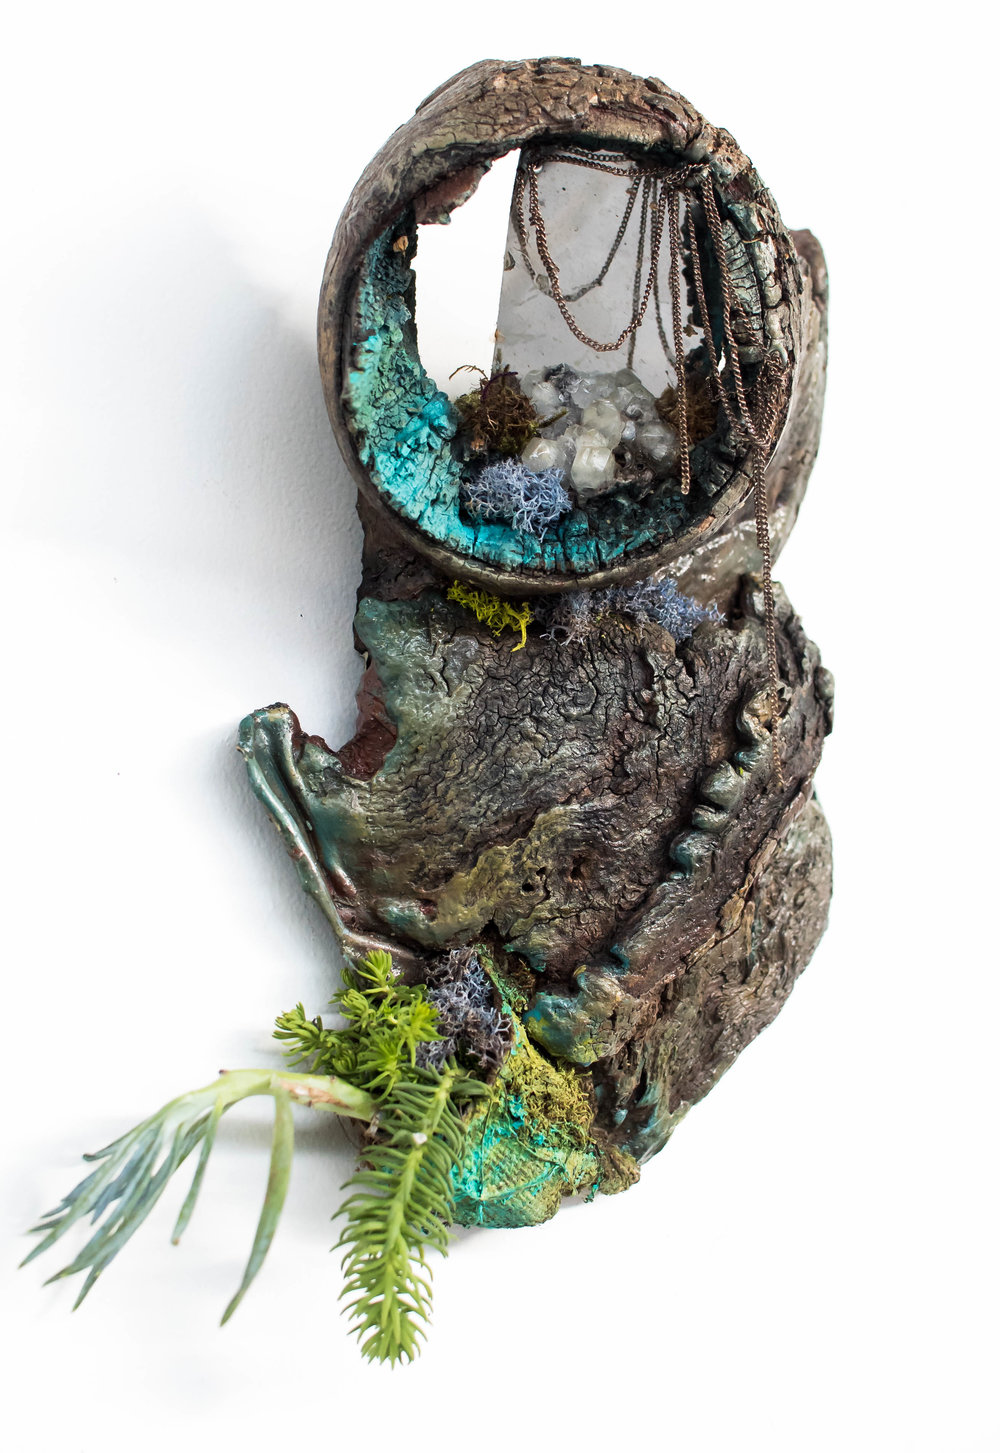 "Reflections at the Altar    scavenged driftwood, chains, mirror & hanging succulent garden  12"" x 6"" x 4"""